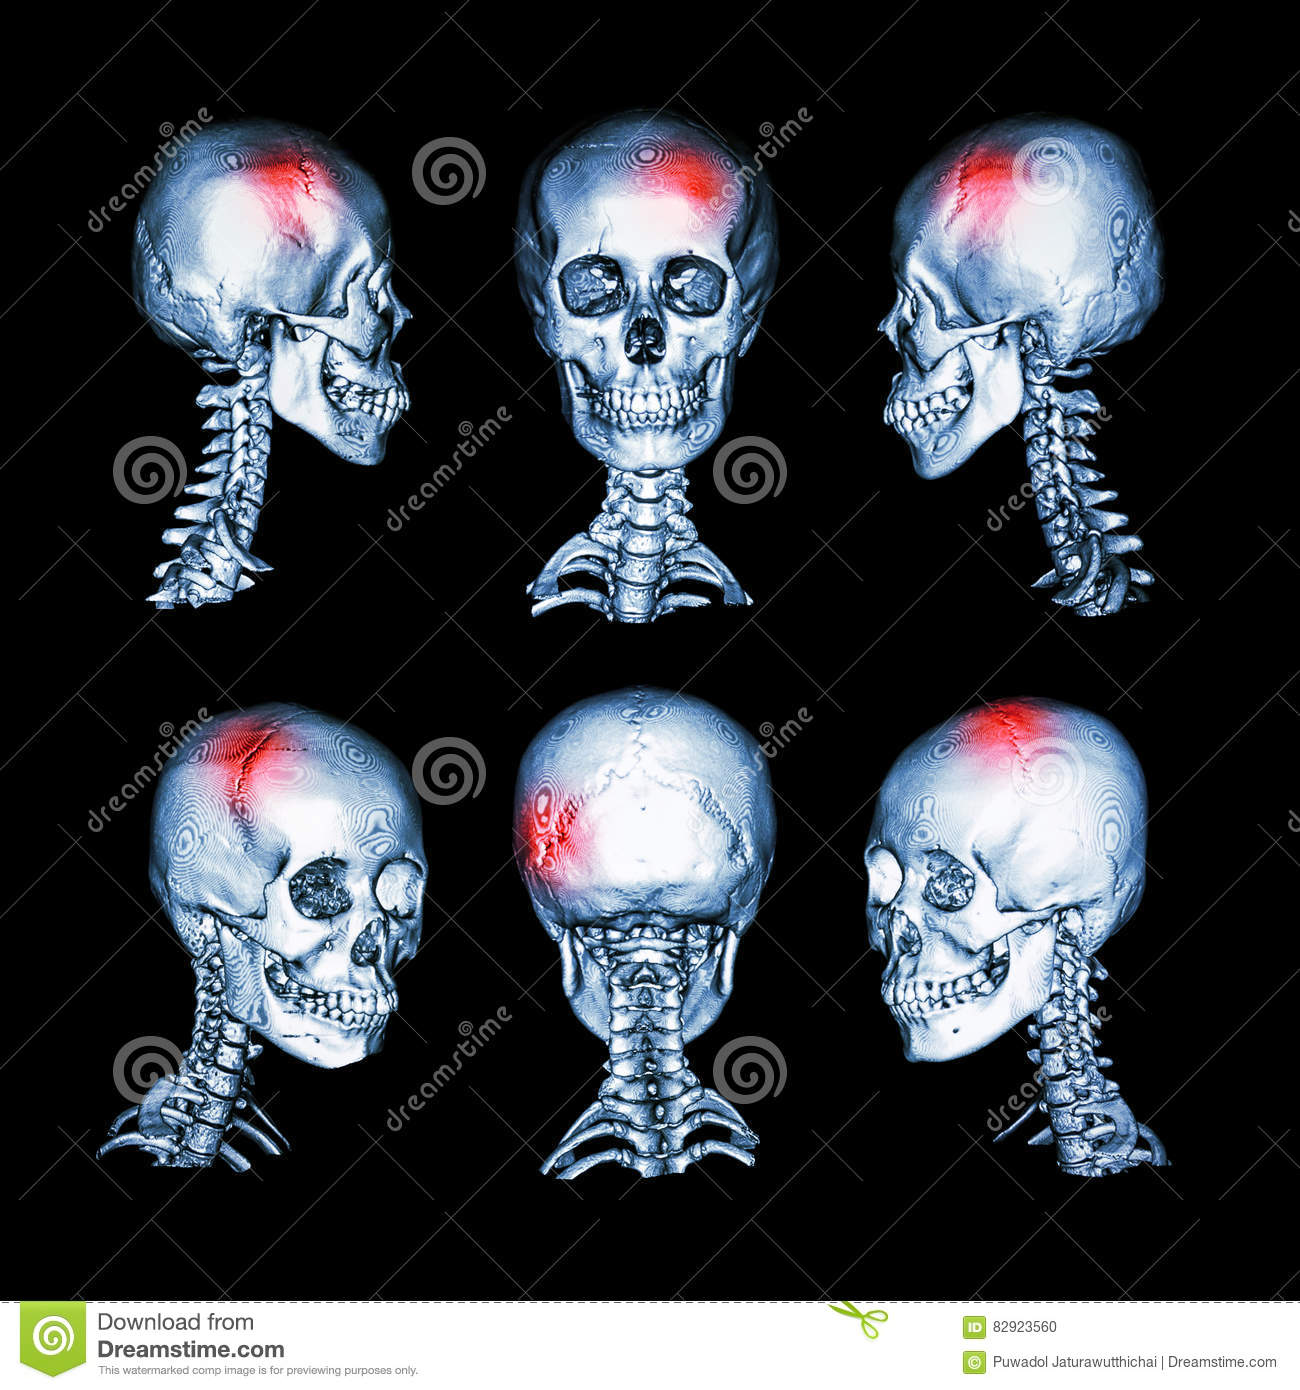 CT scan and 3D image of head and cervical spine. Use this image for stroke , skull fracture , neurological condition .